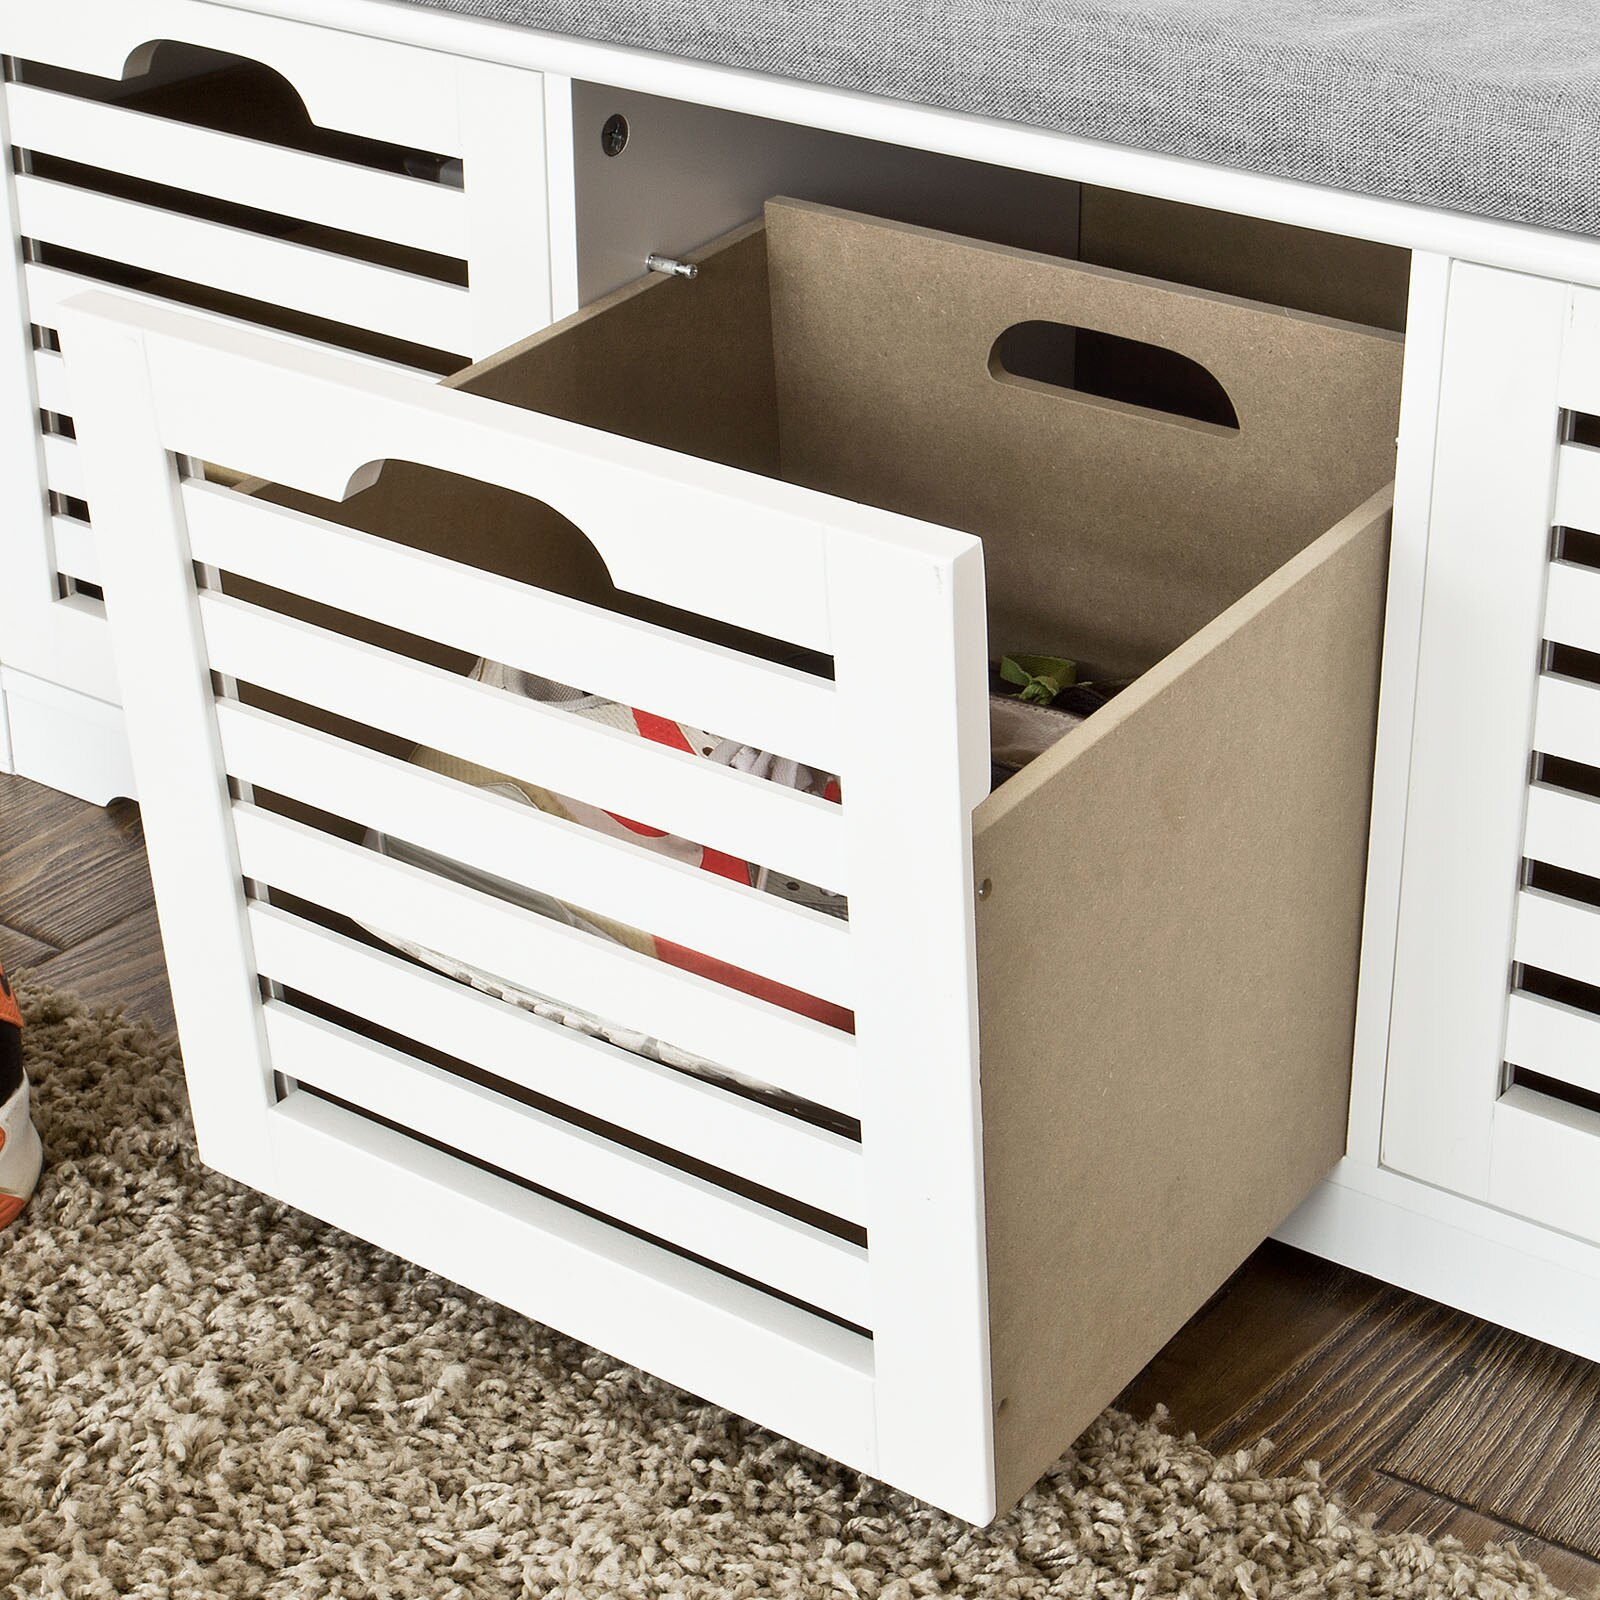 Haotian FSR23-W,Storage Bench with 3 Crates, Shoe Cabinet Shoe Bench with Soft Seat Cushion 4